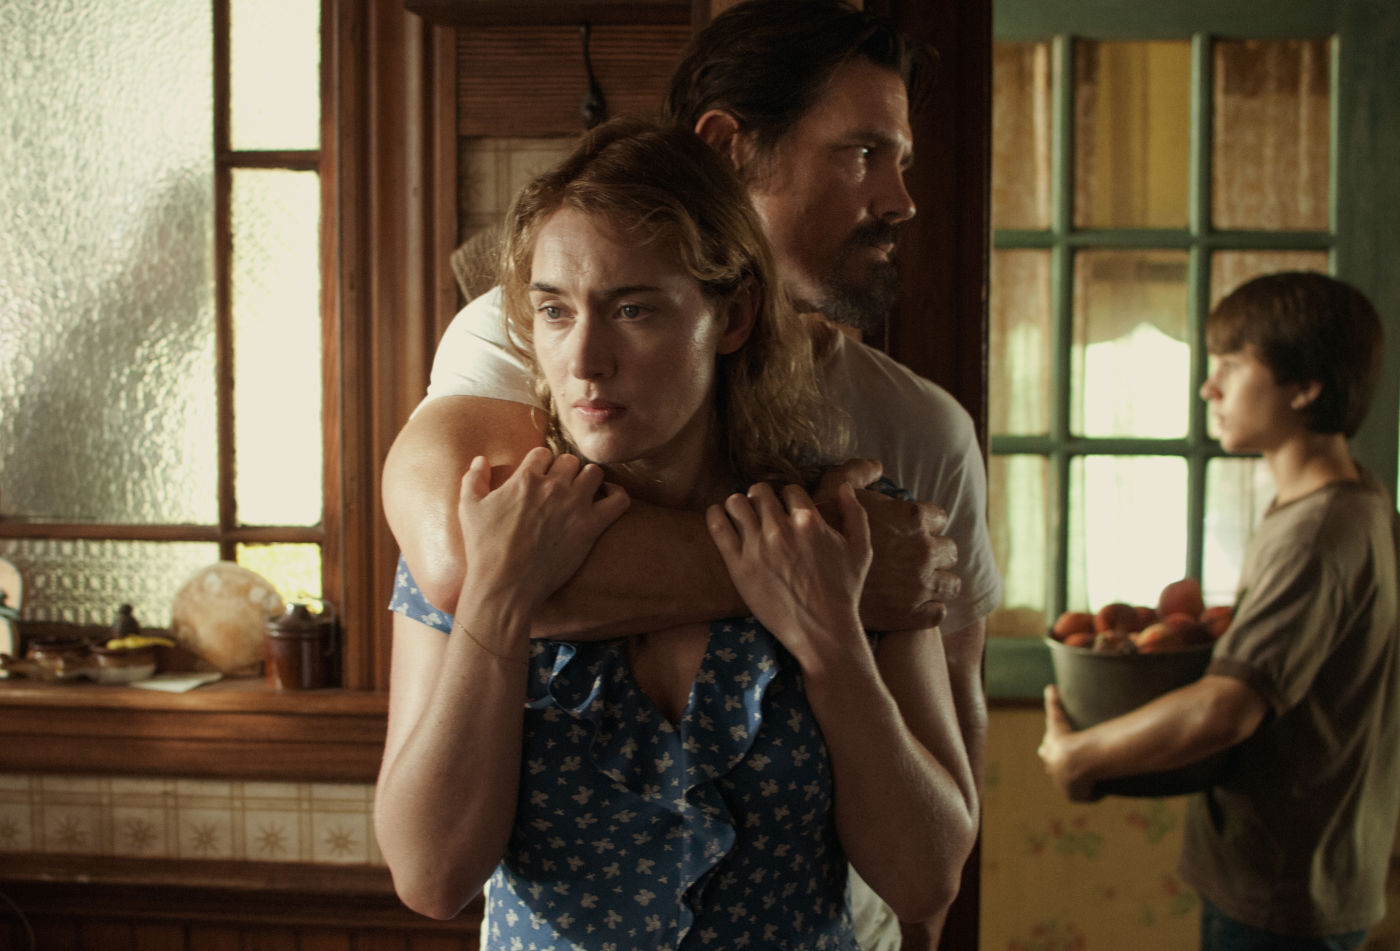 Kate Winslet, Josh Brolin and Gattlin Griffith in Paramount Pictures' Labor Day (2014)